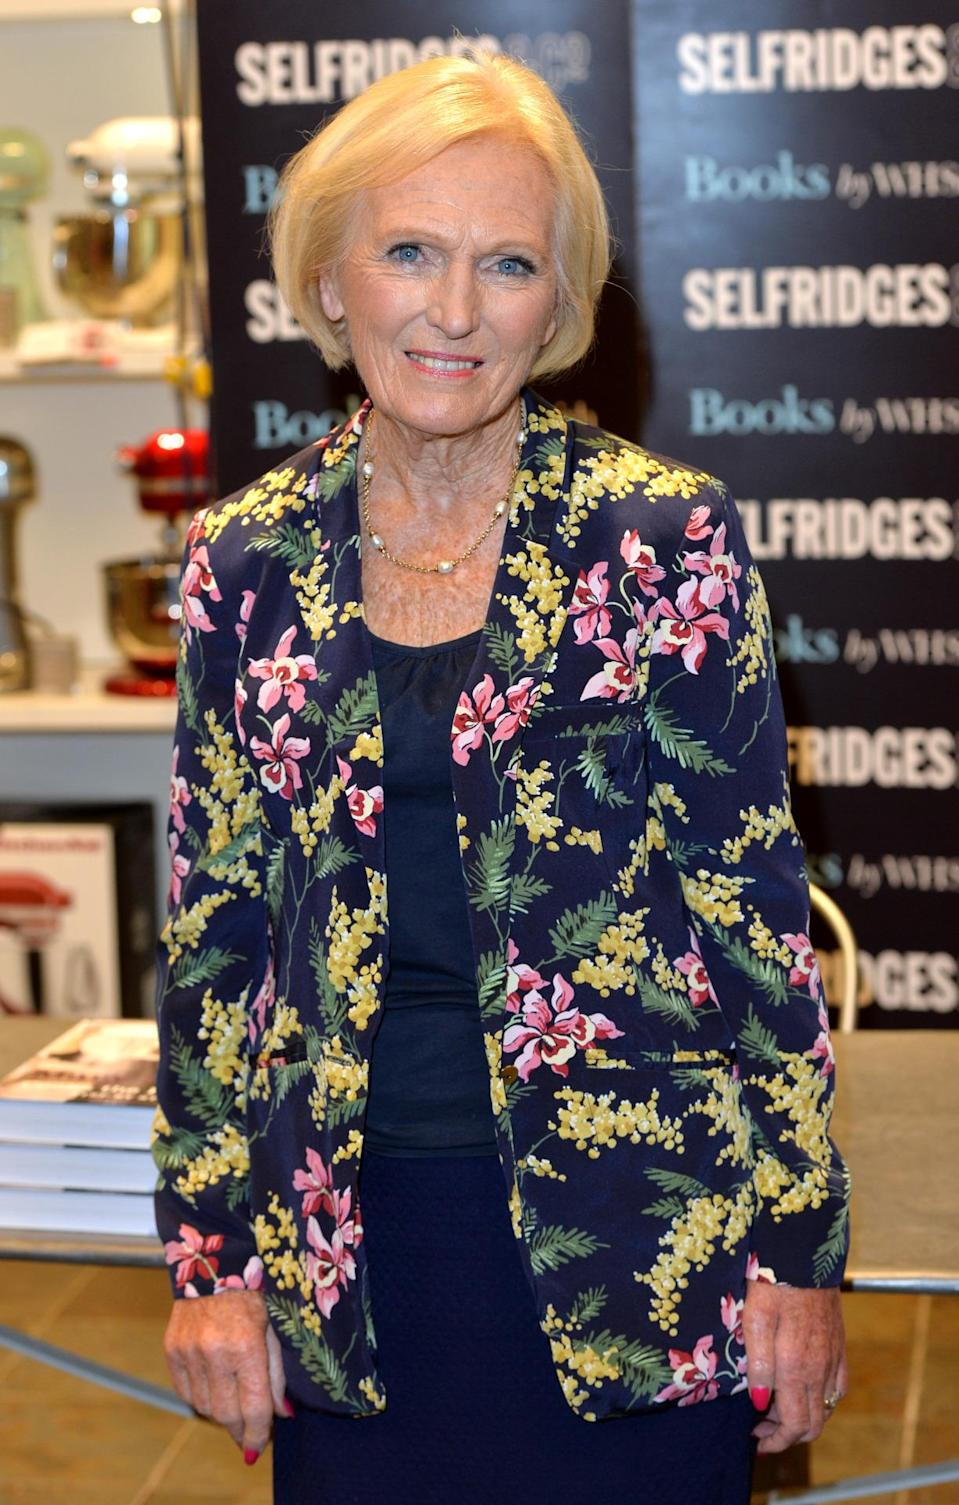 <p>Another day for Mary meant another eye-catching jacket. This time, she chose a floral blazer for a book signing at Selfridges.</p><p><i>[Photo: Getty]</i></p>